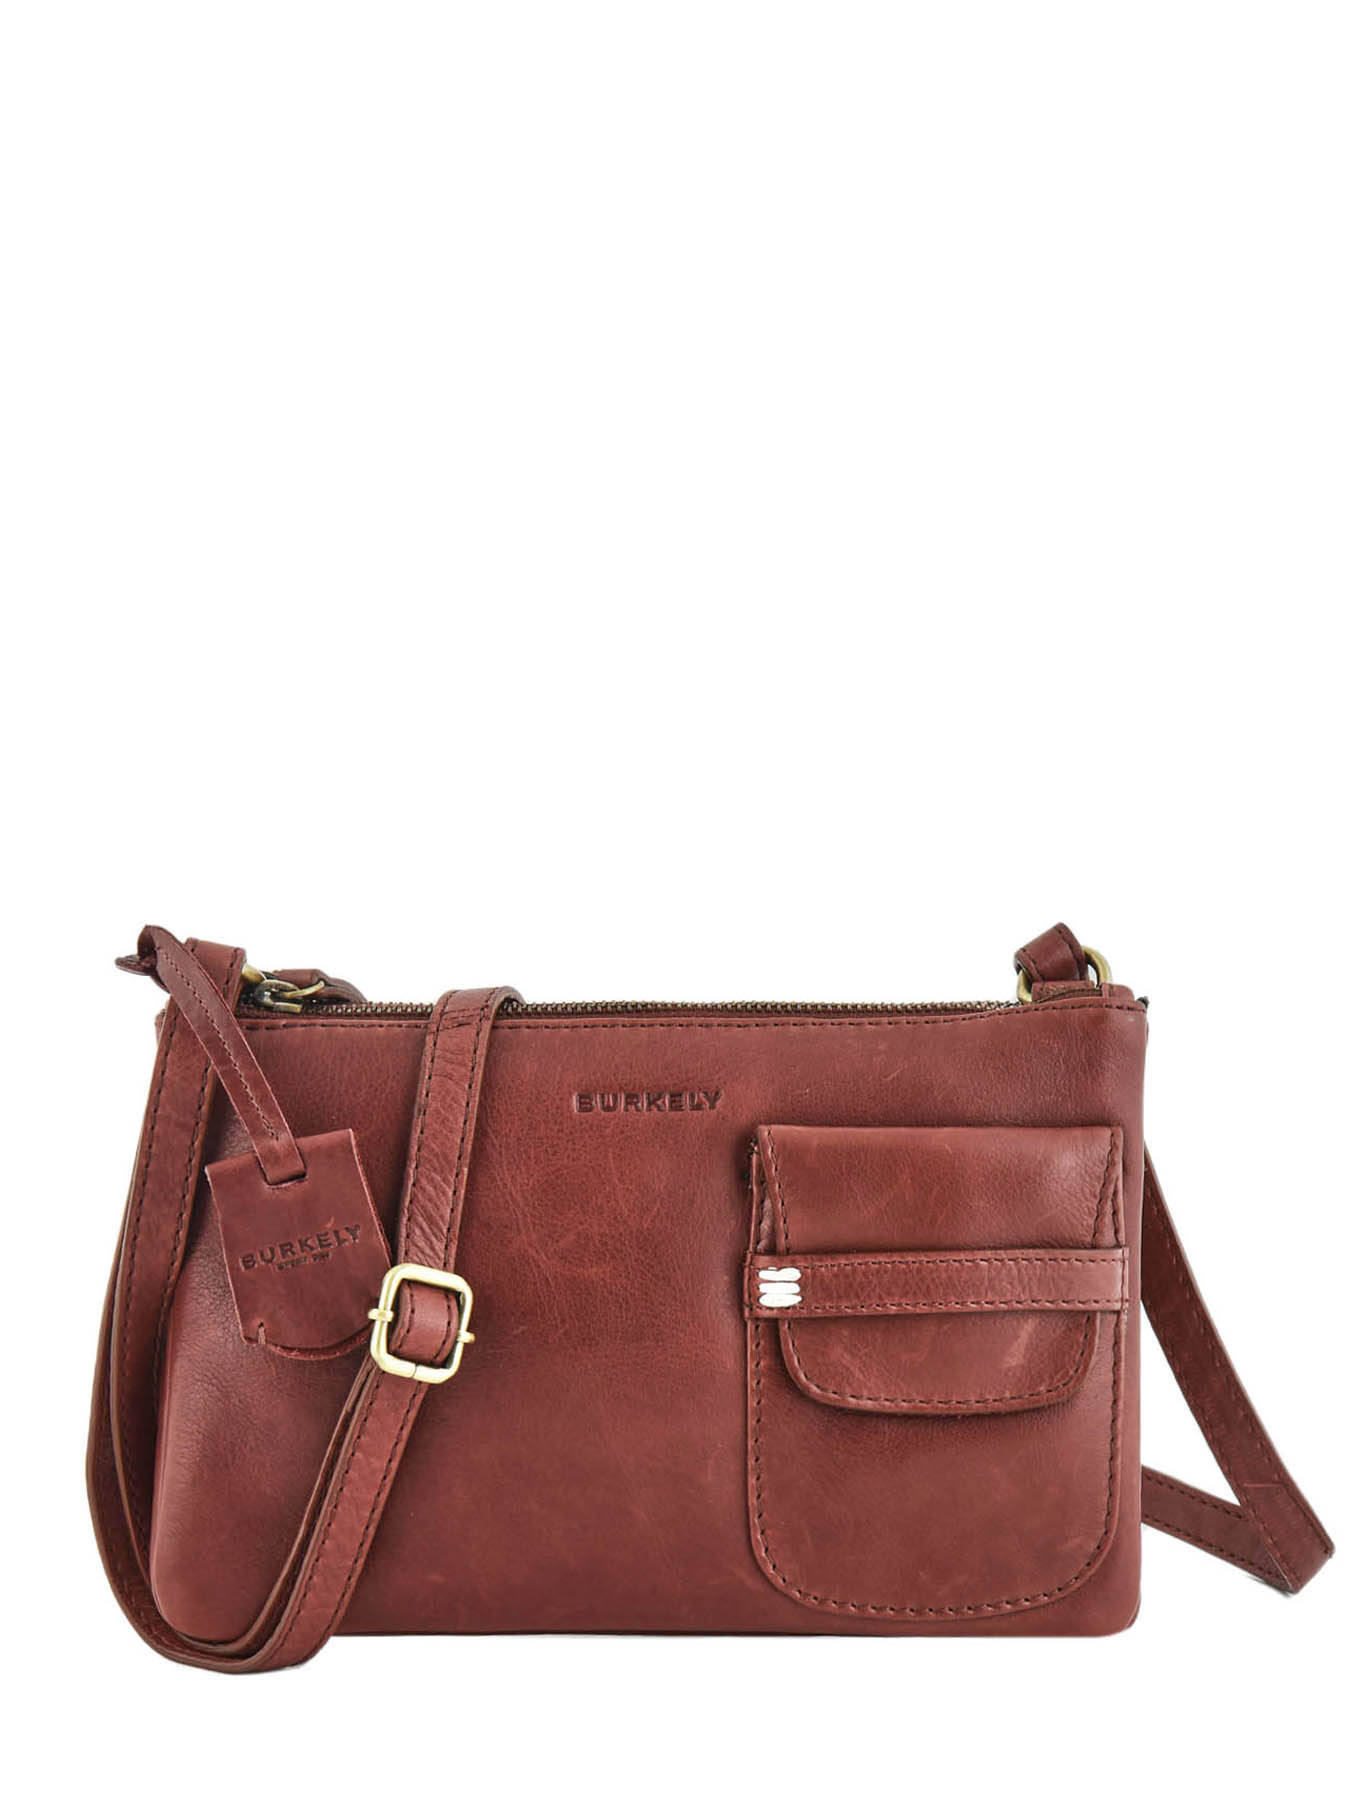 Sac bandoulière Craft Caily cuir BURKELY